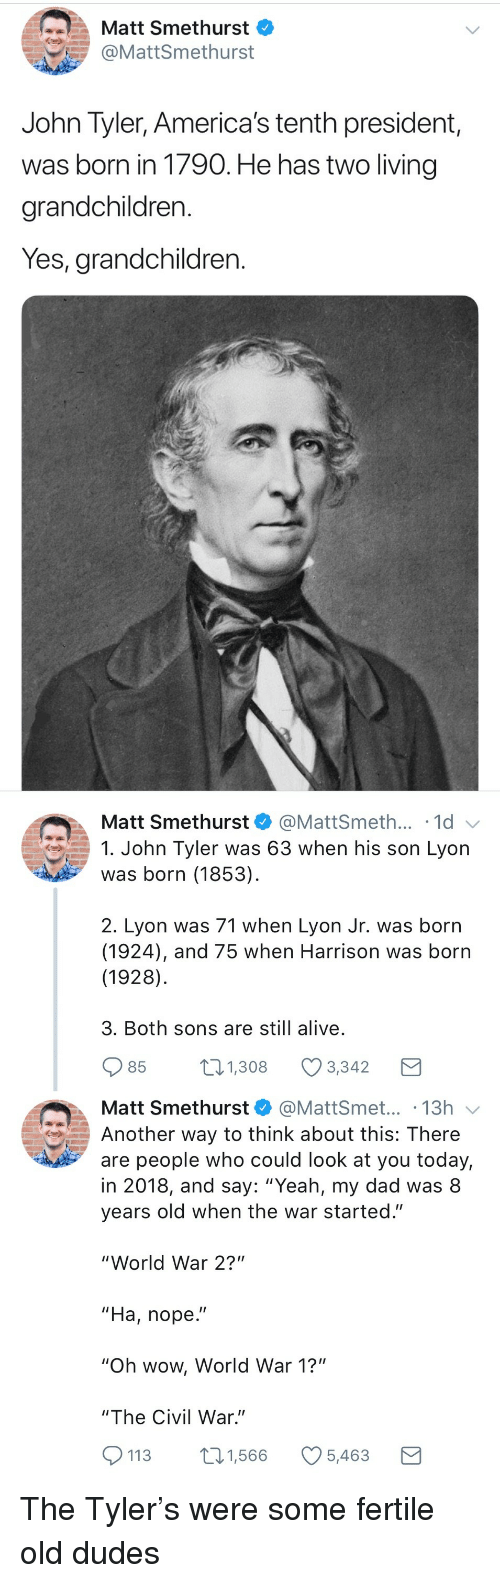 """Alive, Dad, and Wow: Matt Smethurst  @MattSmethurst  John Tyler, America's tenth president,  was born in 1790. He has two living  grandchildren.  Yes, grandchildren.   Matt Smethurst  @MattSmeth... 1d  1. John Tyler was 63 when his son Lyon  was born (1853)  2. Lyon was 71 when Lyon Jr. was born  (1924), and 75 when Harrison was born  (1928)  3. Both sons are still alive  85  1.308 Ø3342  Matt Smethurst@MattSmet... .13h  Another way to think about this: There  are people who could look at you today,  in 2018, and say: """"Yeah, my dad was 8  years old when the war started.""""  """"World War 2?""""  """"Ha, nope.""""  """"Oh wow, World War 1?""""  """"The Civil War.""""  113 1,566 5,463 <p>The Tyler's were some fertile old dudes</p>"""